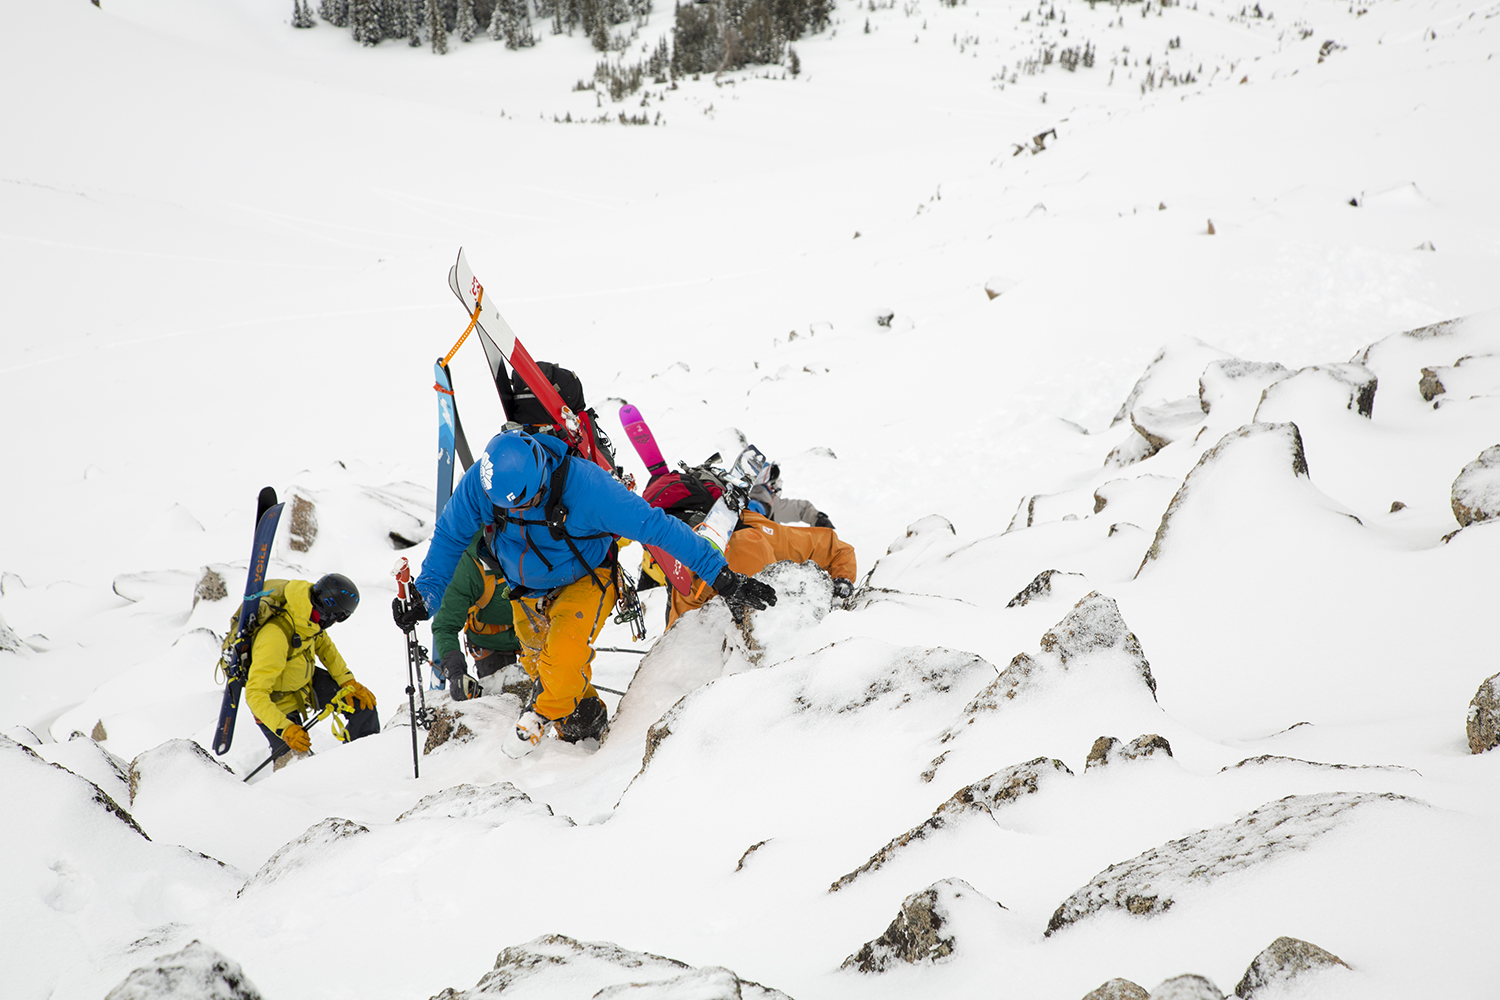 Moving through technical terrain at BLY ski mountaineering camp